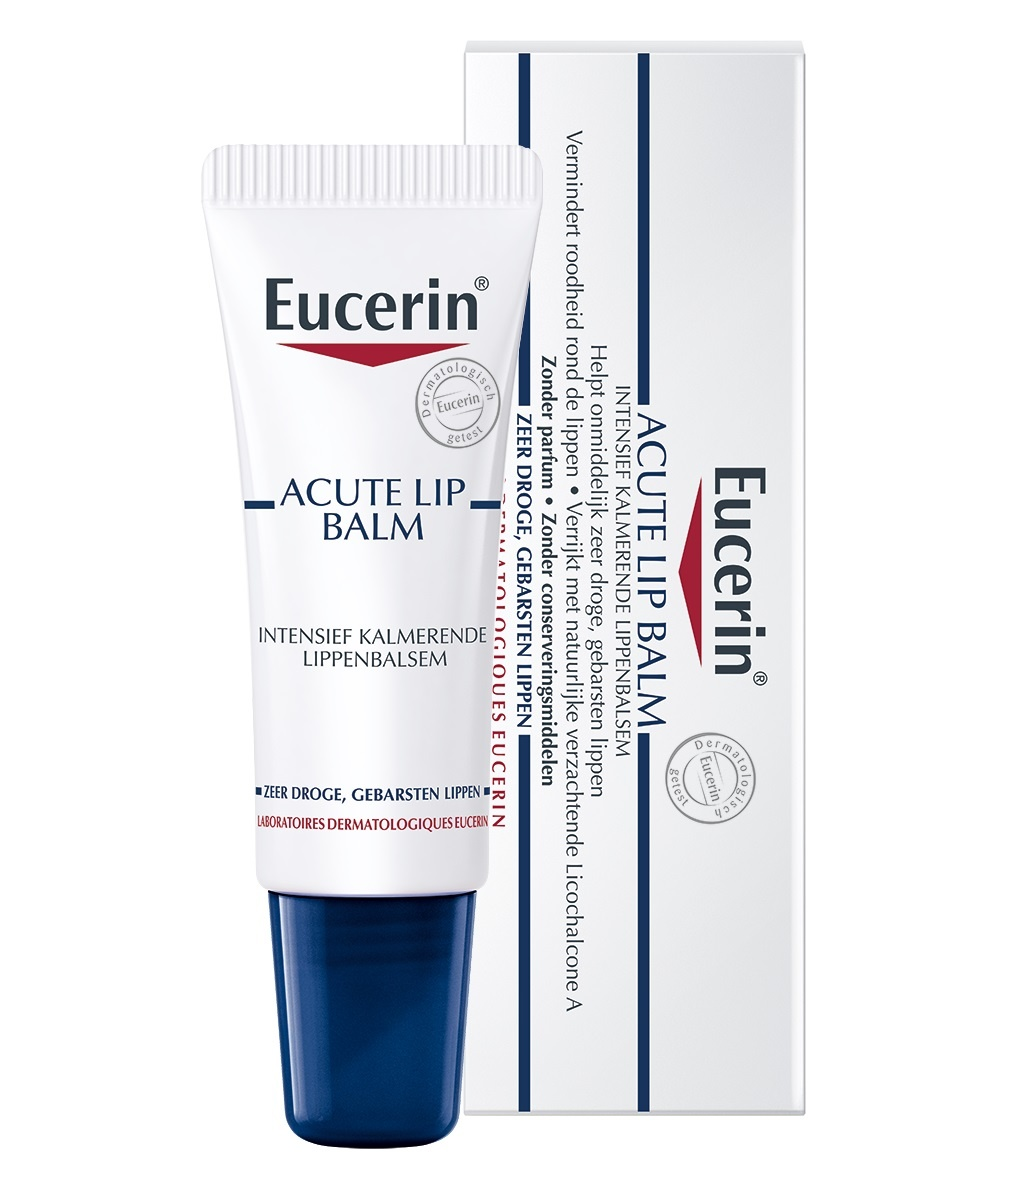 Eucerin Acute Lip Balm (10ml)